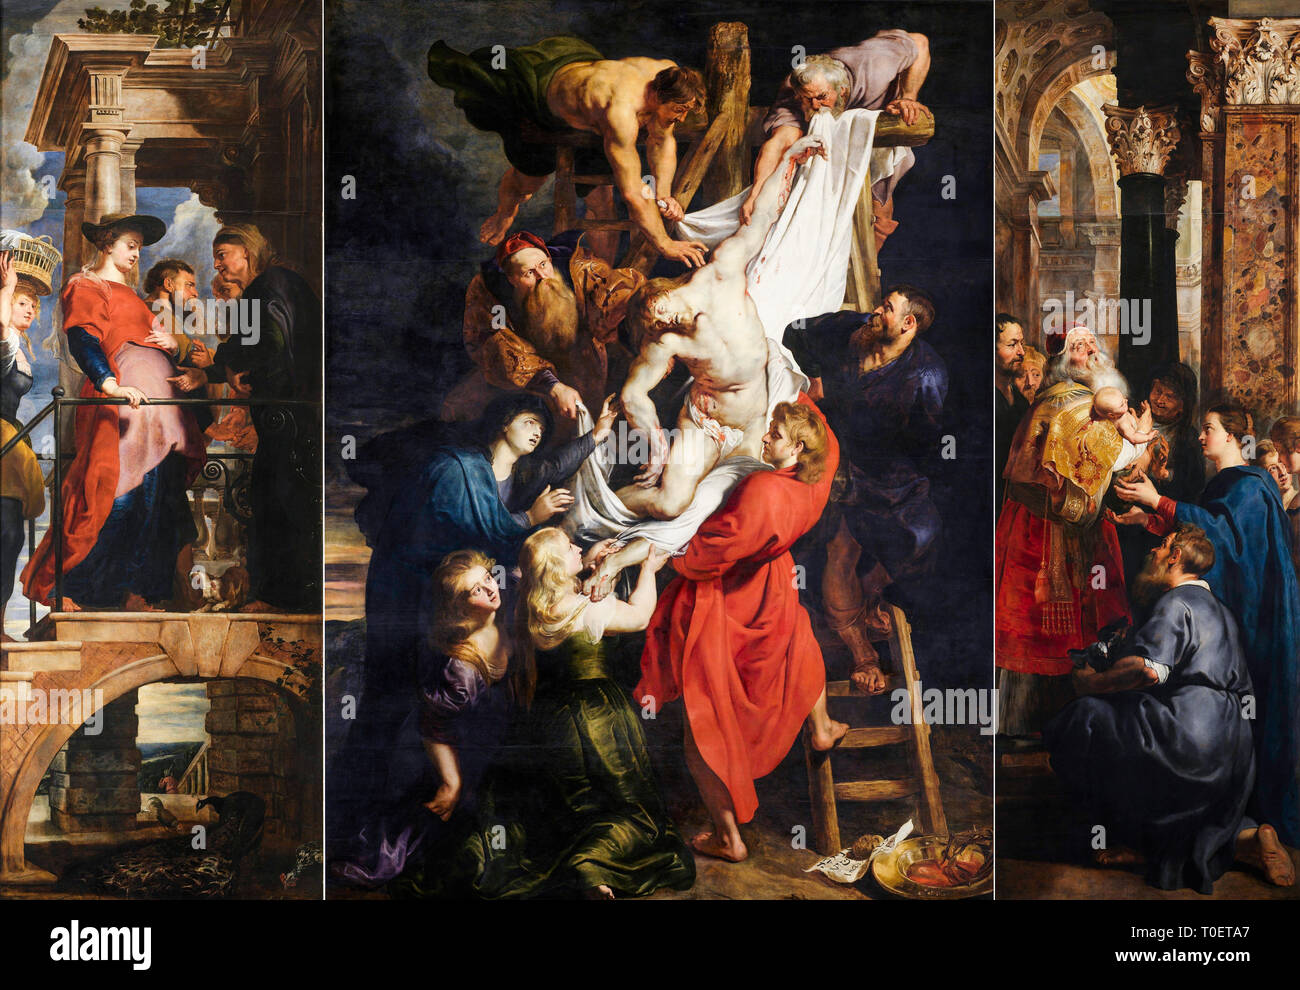 Peter Paul Rubens, The Descent from the Cross, Triptych, c. 1612 - Stock Image